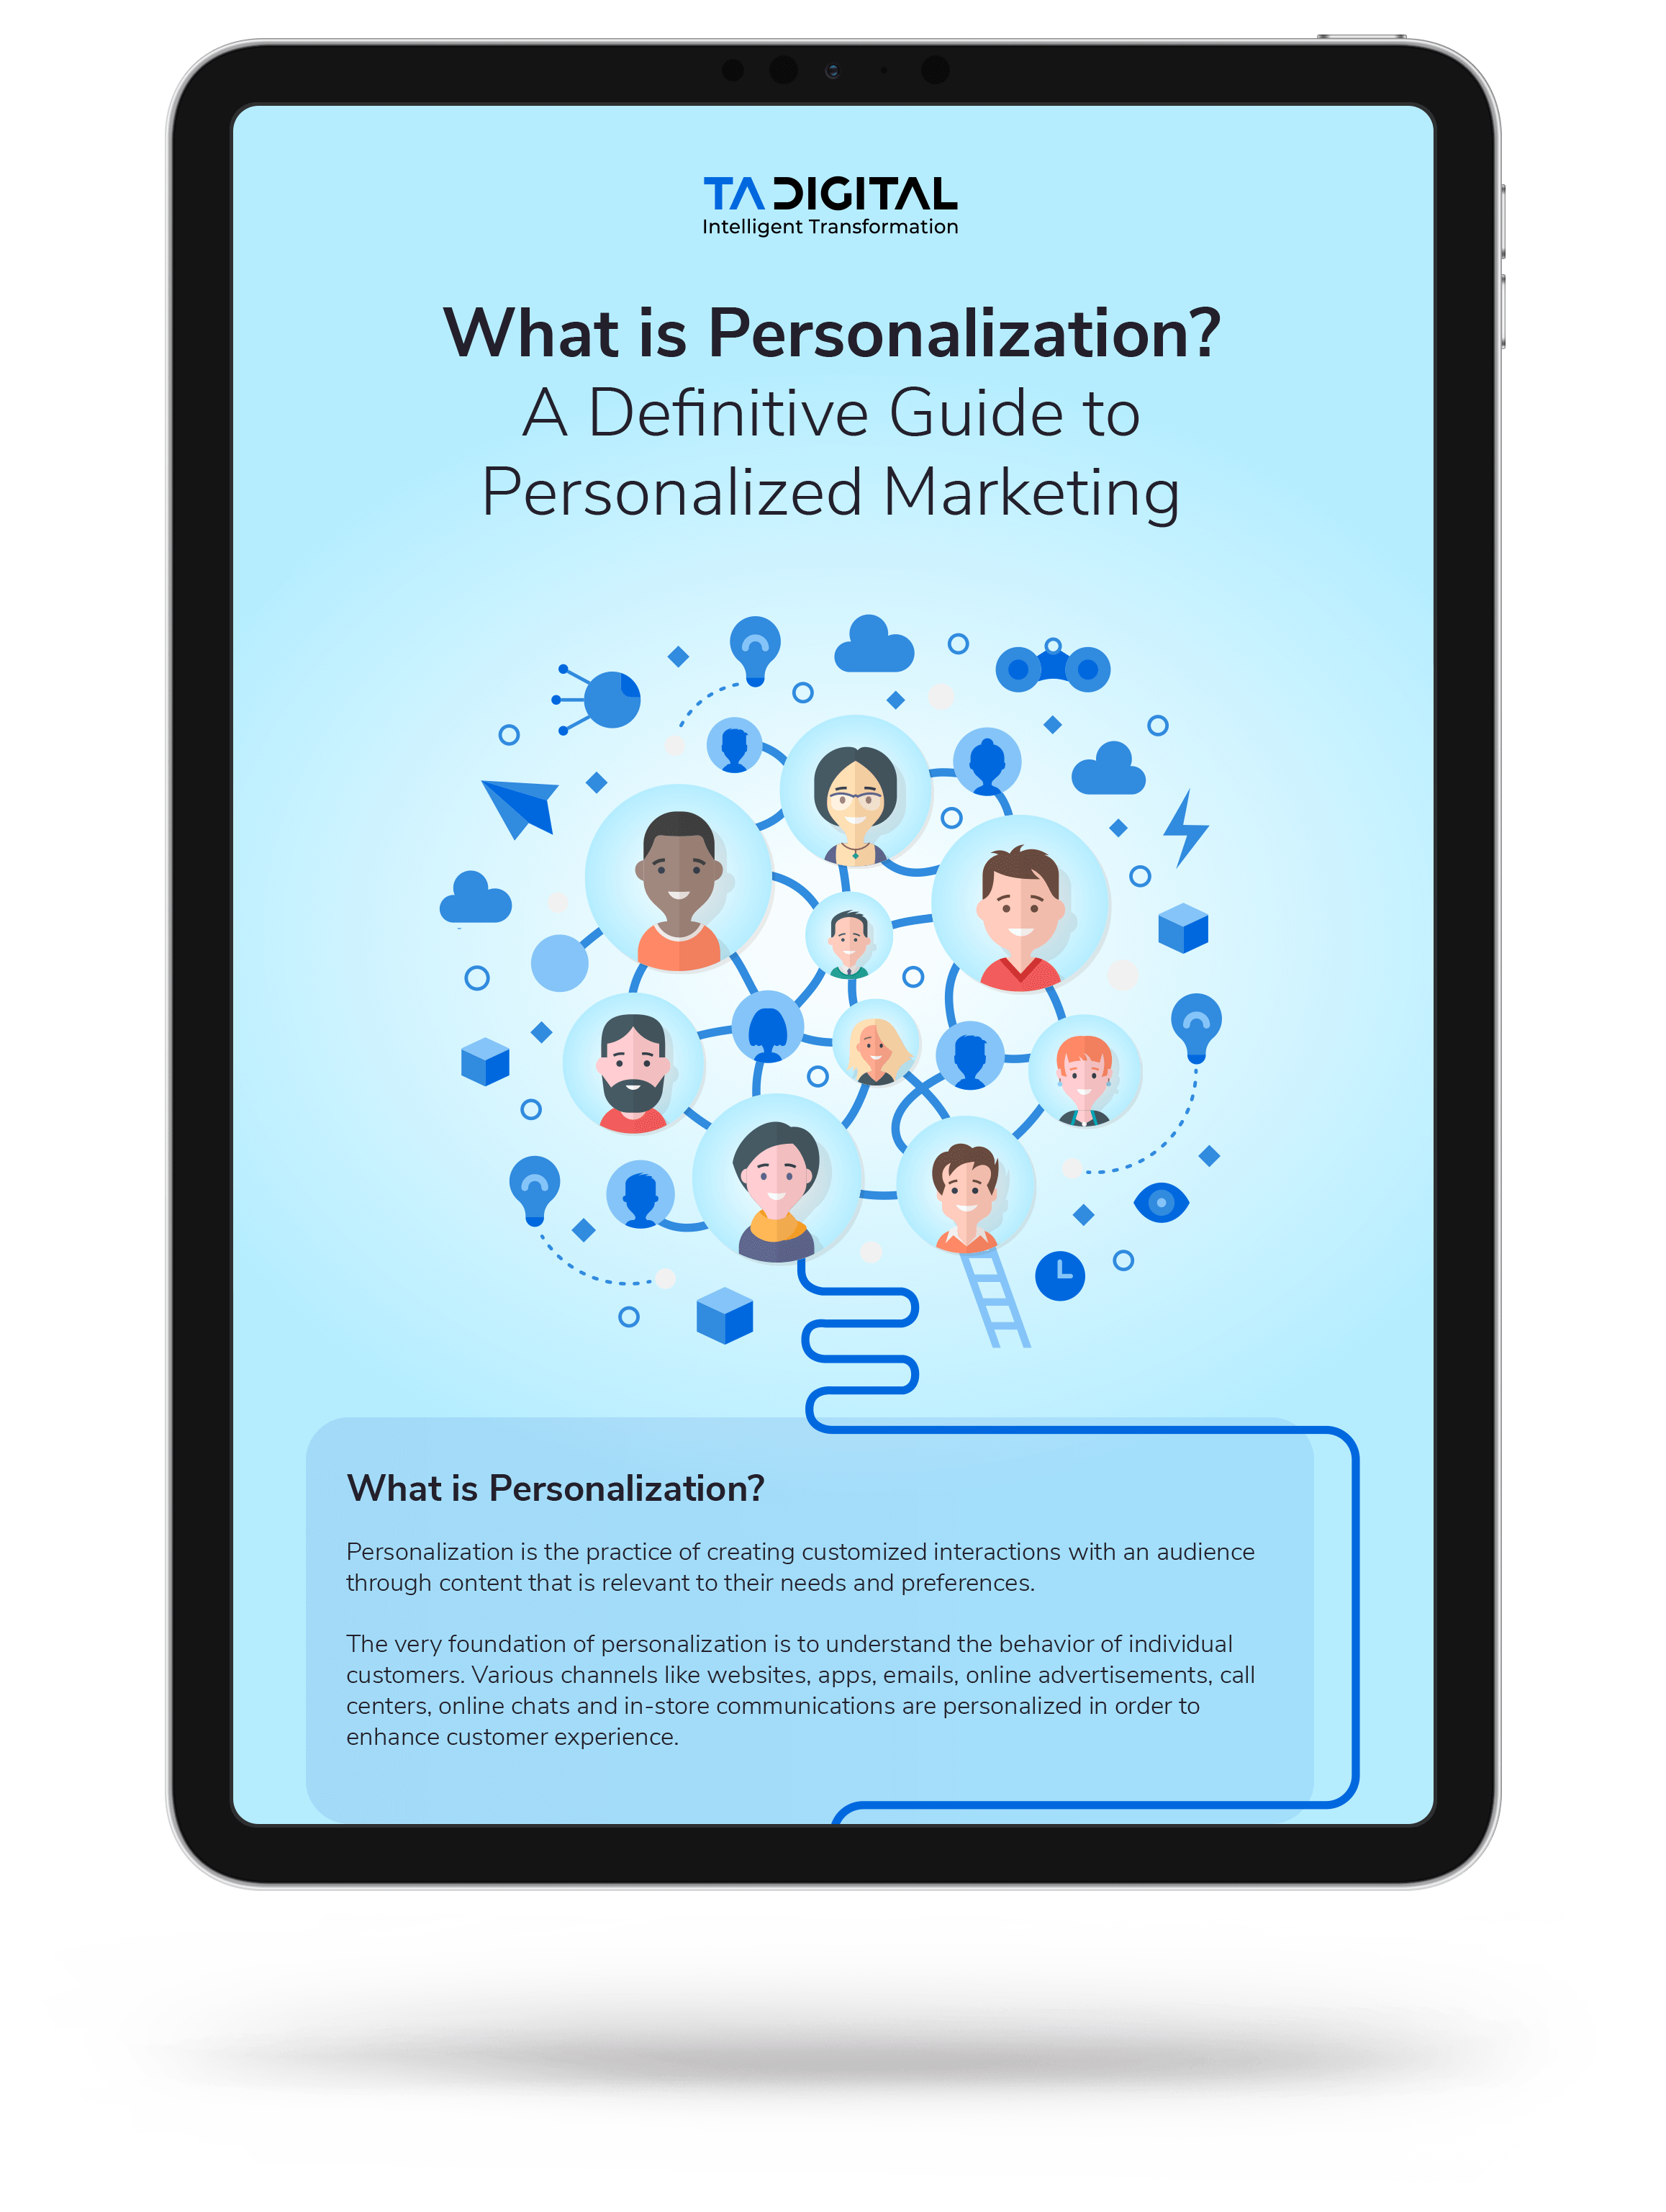 What is Personalization? A Definitive Guide to Personalized Marketing